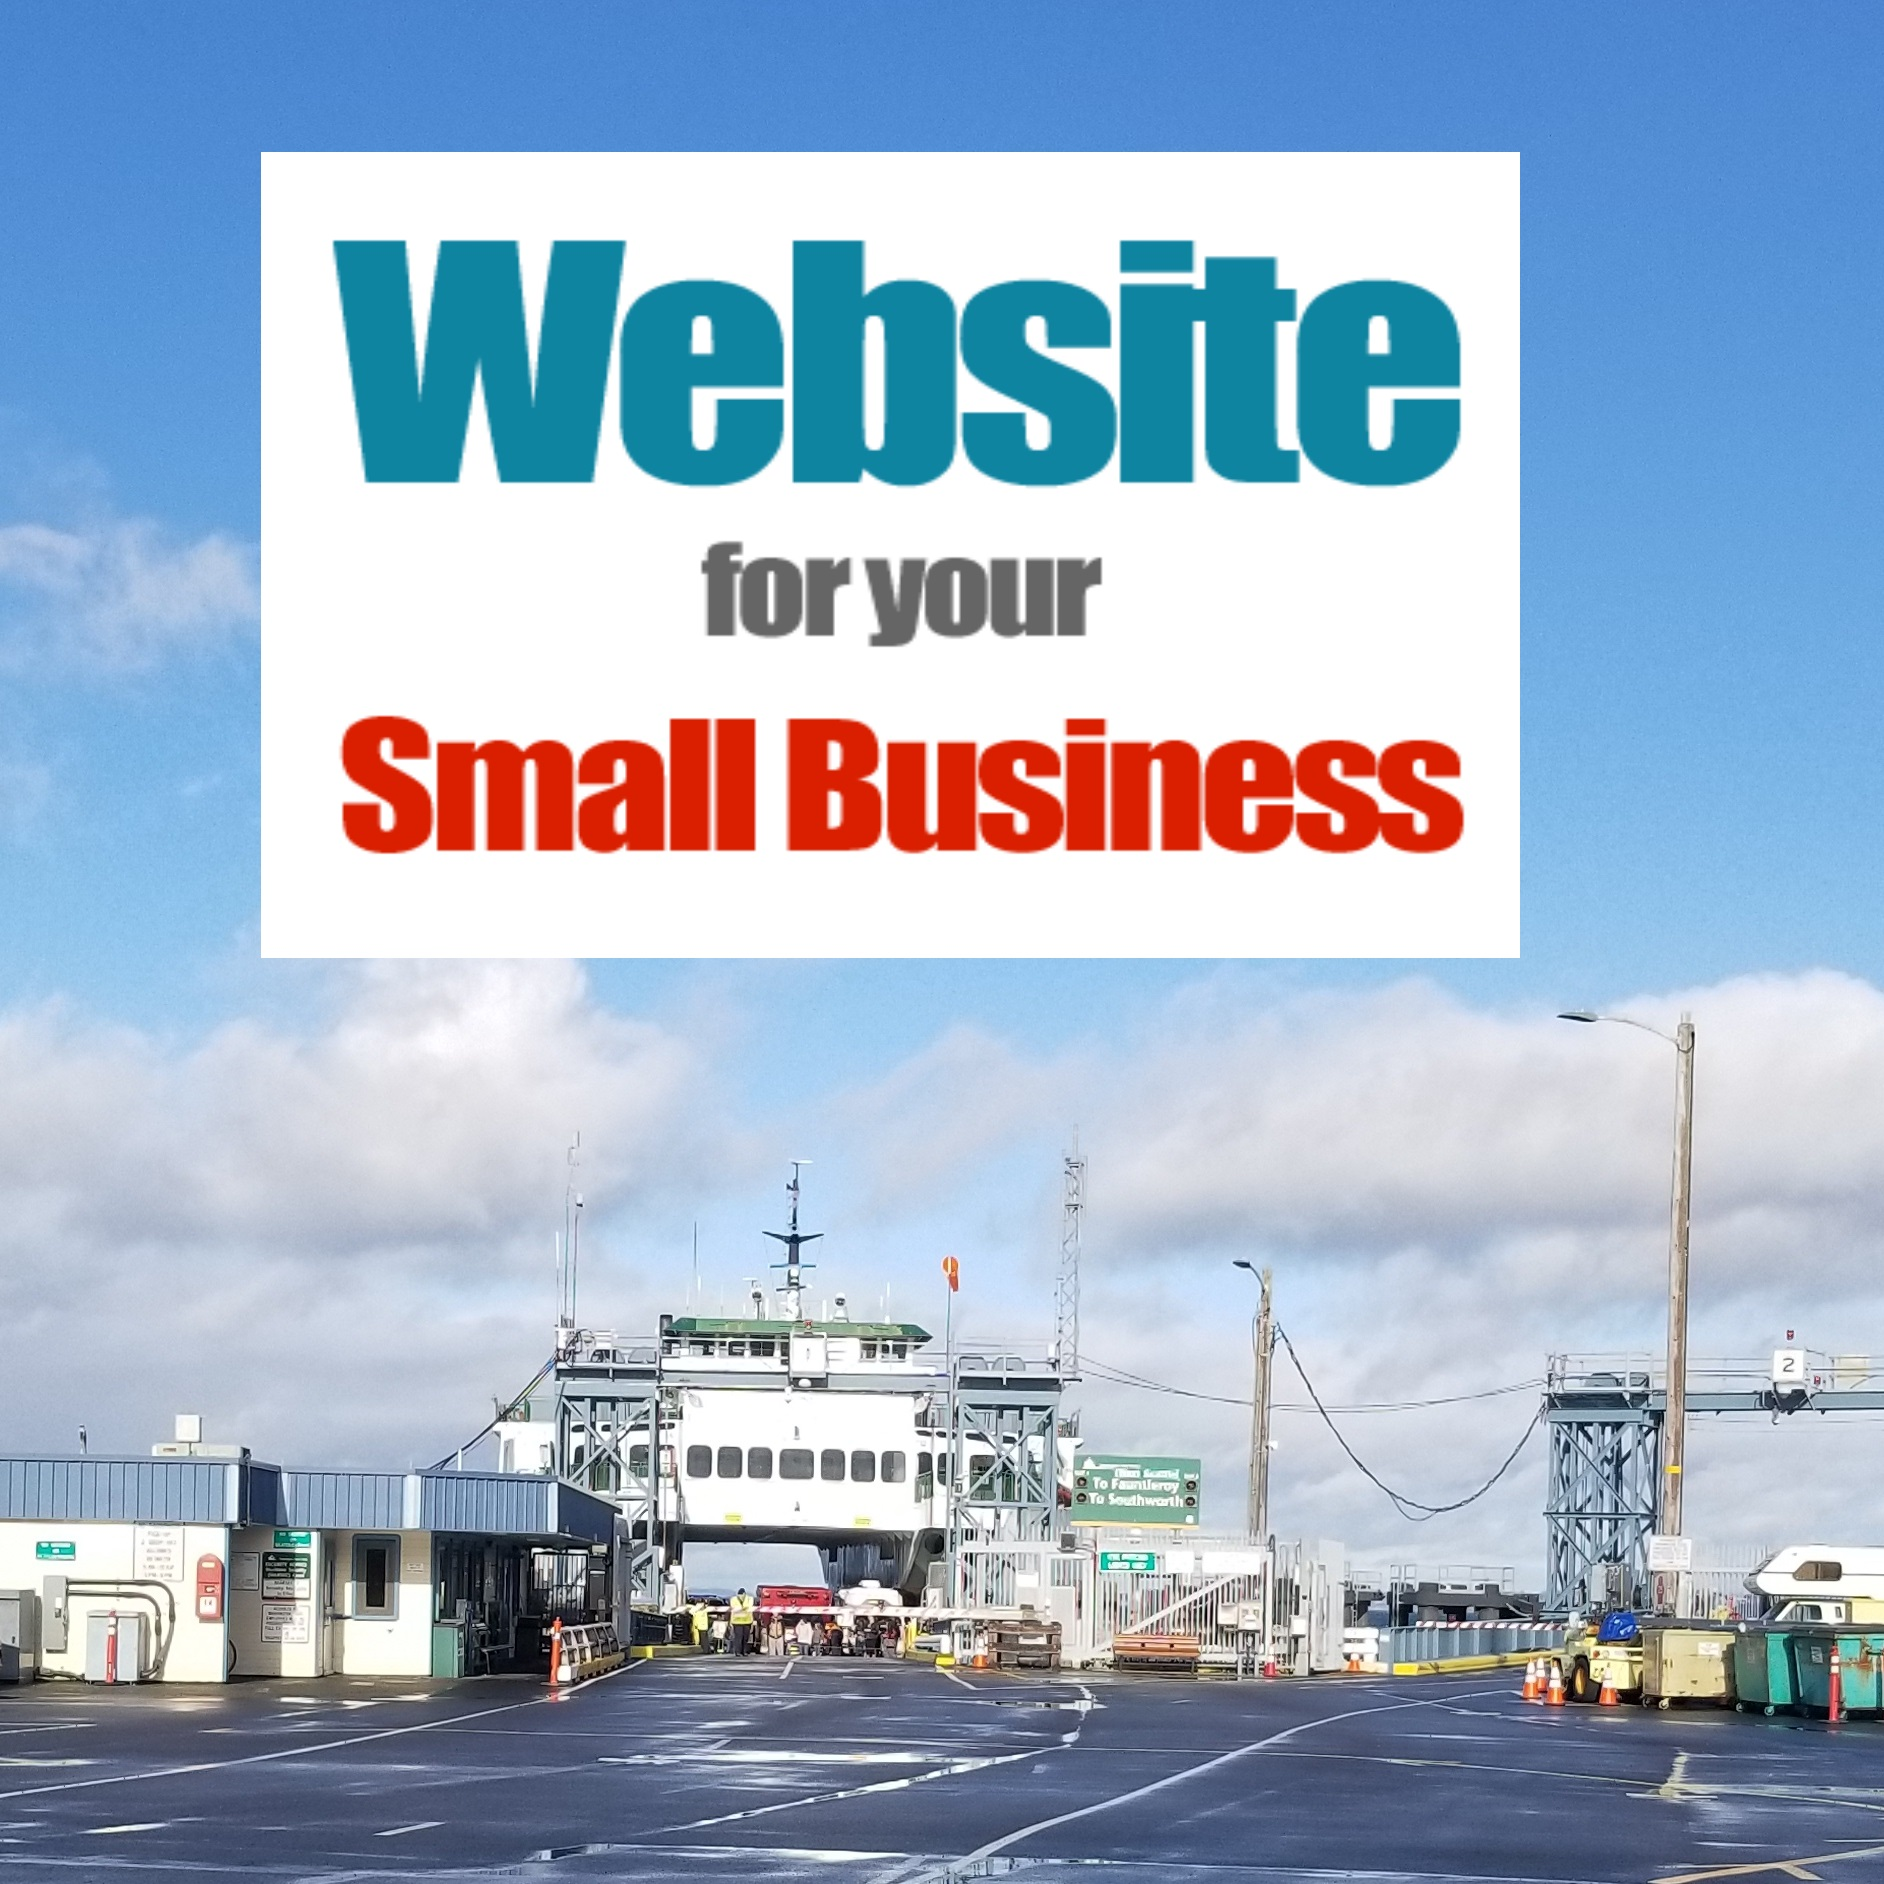 Vashon Island small business websites by 98070 Media